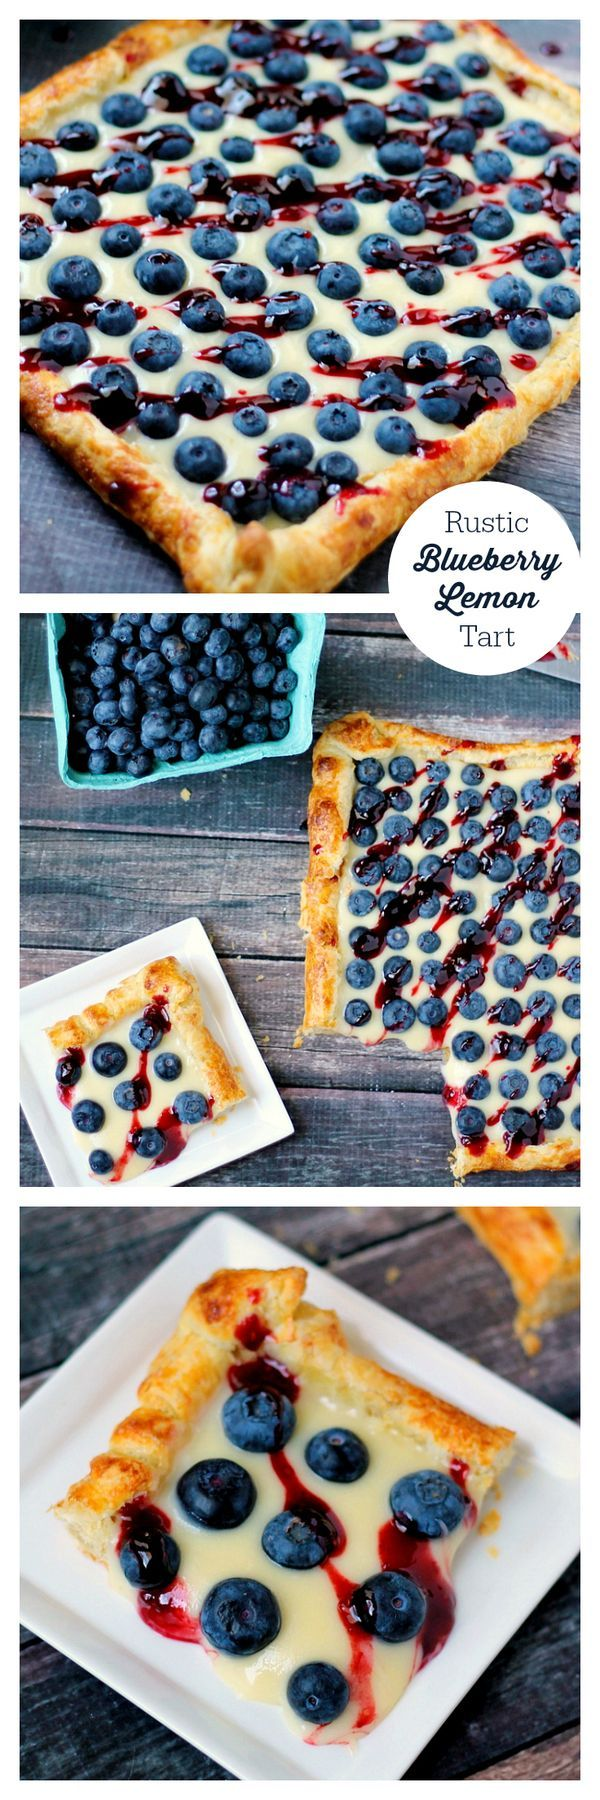 Rustic Blueberry Lemon Tart recipe - With a flaky crust, creamy lemon filling and topped with fresh blueberries and preserves, just thinking about this luscious dessert makes me drool!